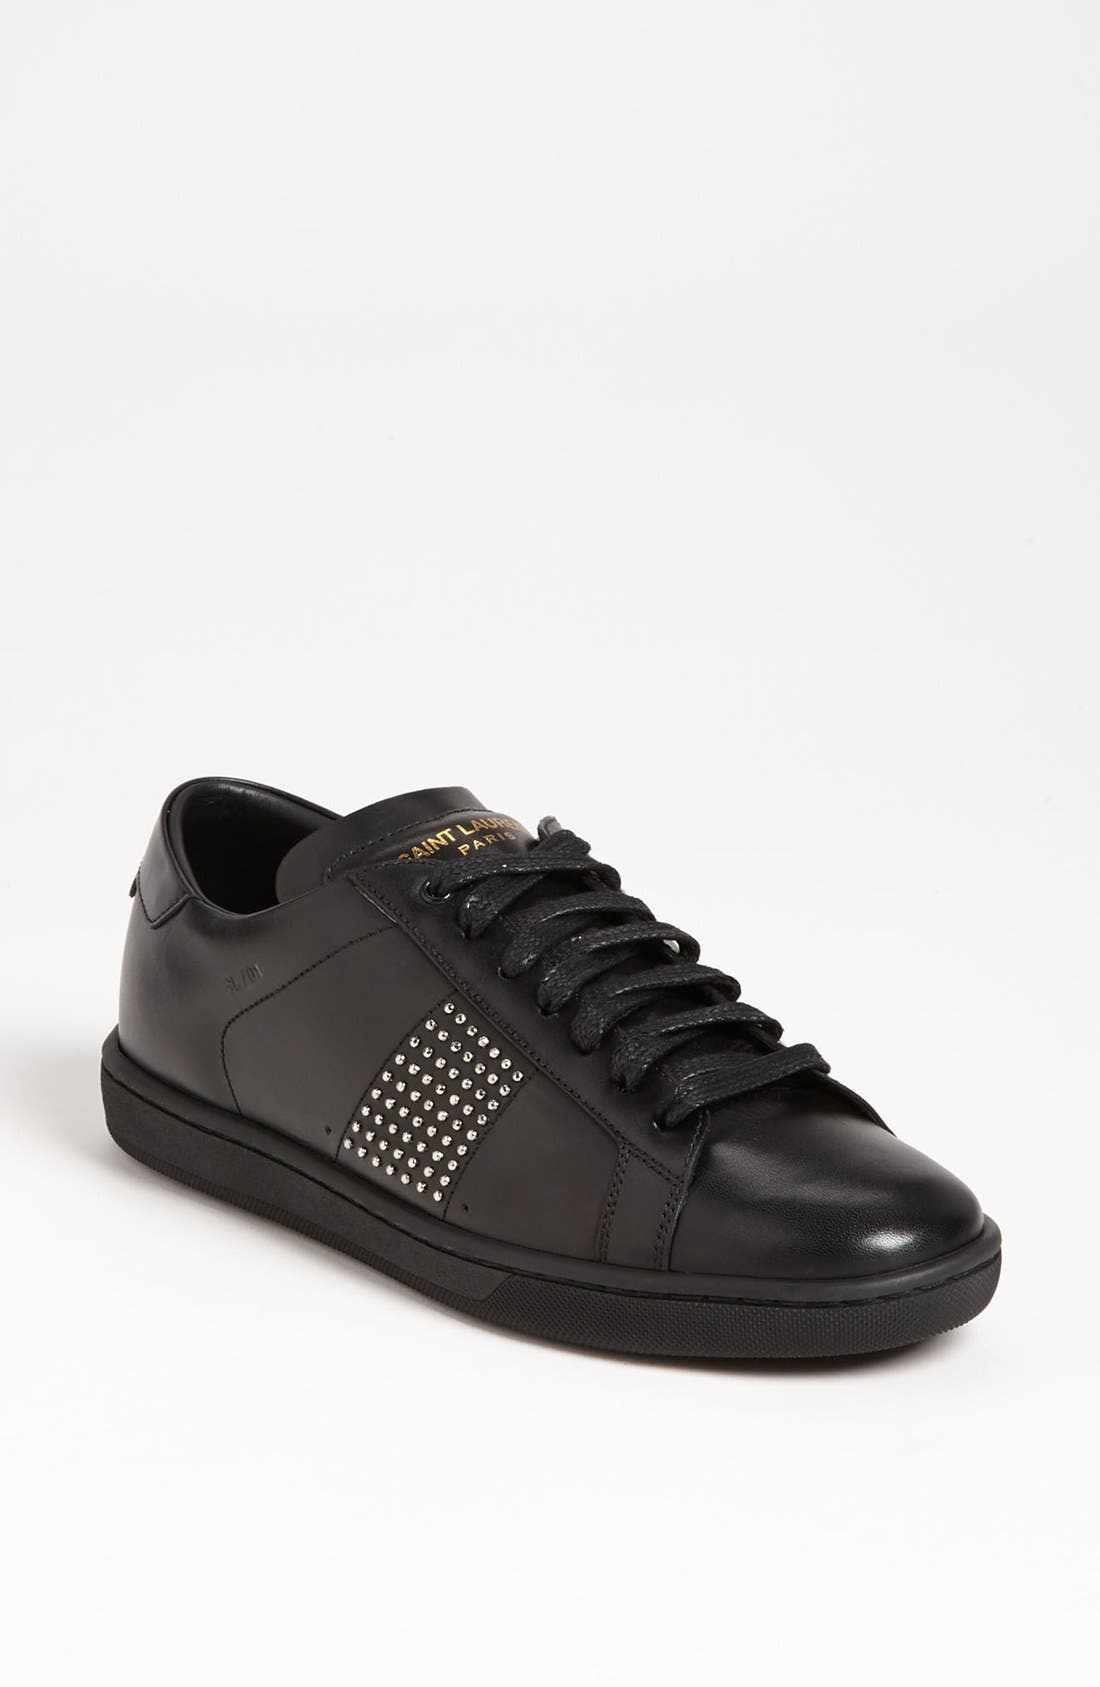 Alternate Image 1 Selected - Saint Laurent Low Top Sneaker